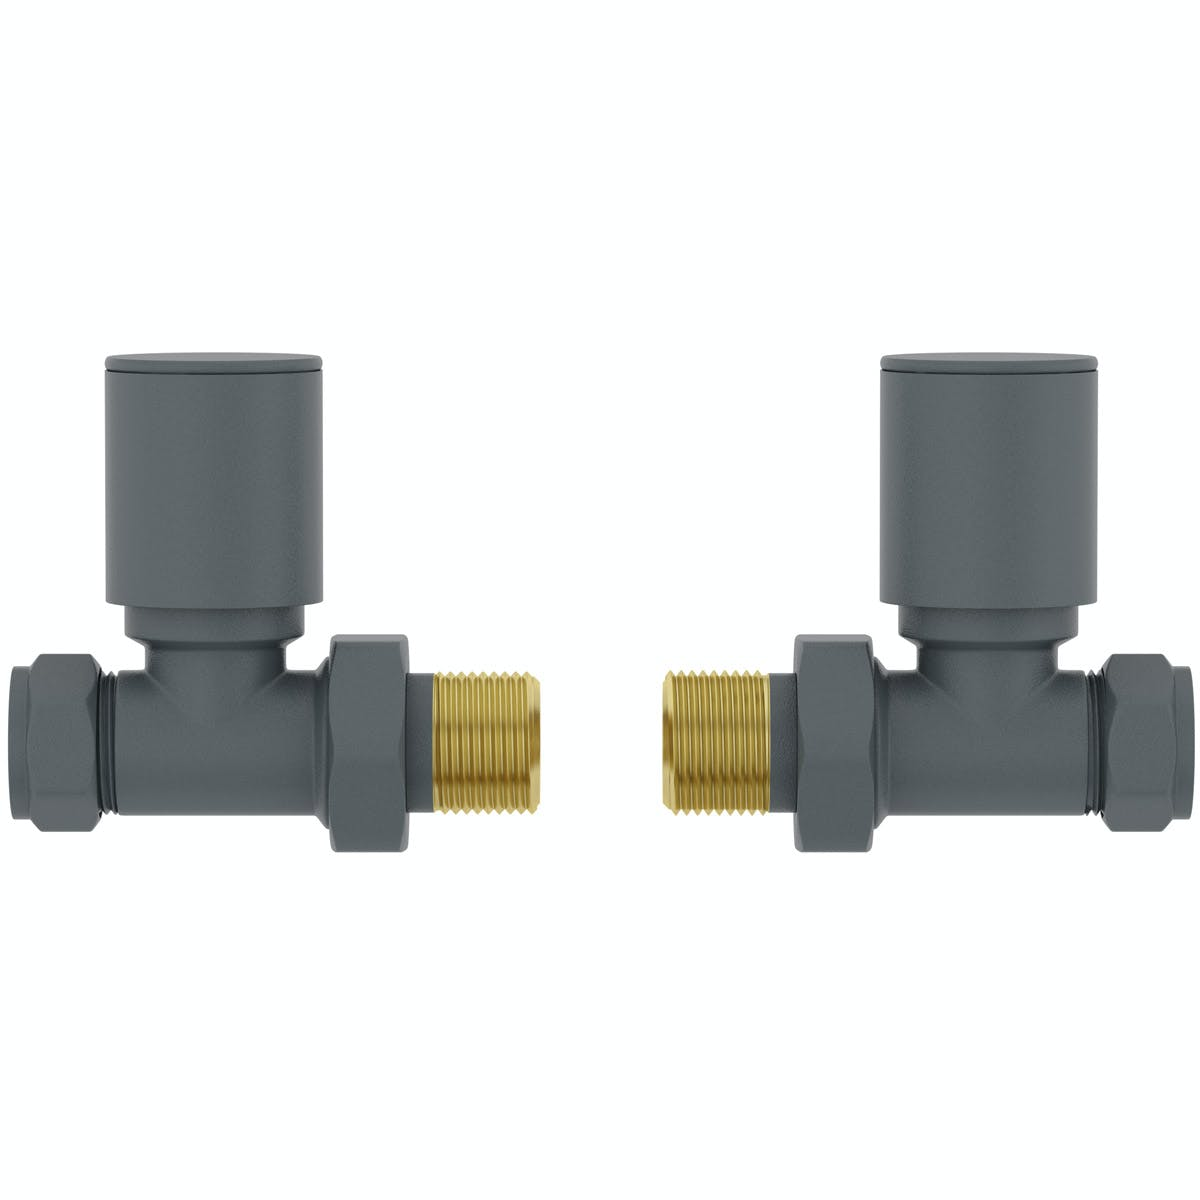 The Heating Co Straight Anthracite Grey Radiator Valves At Victoriaplum Com